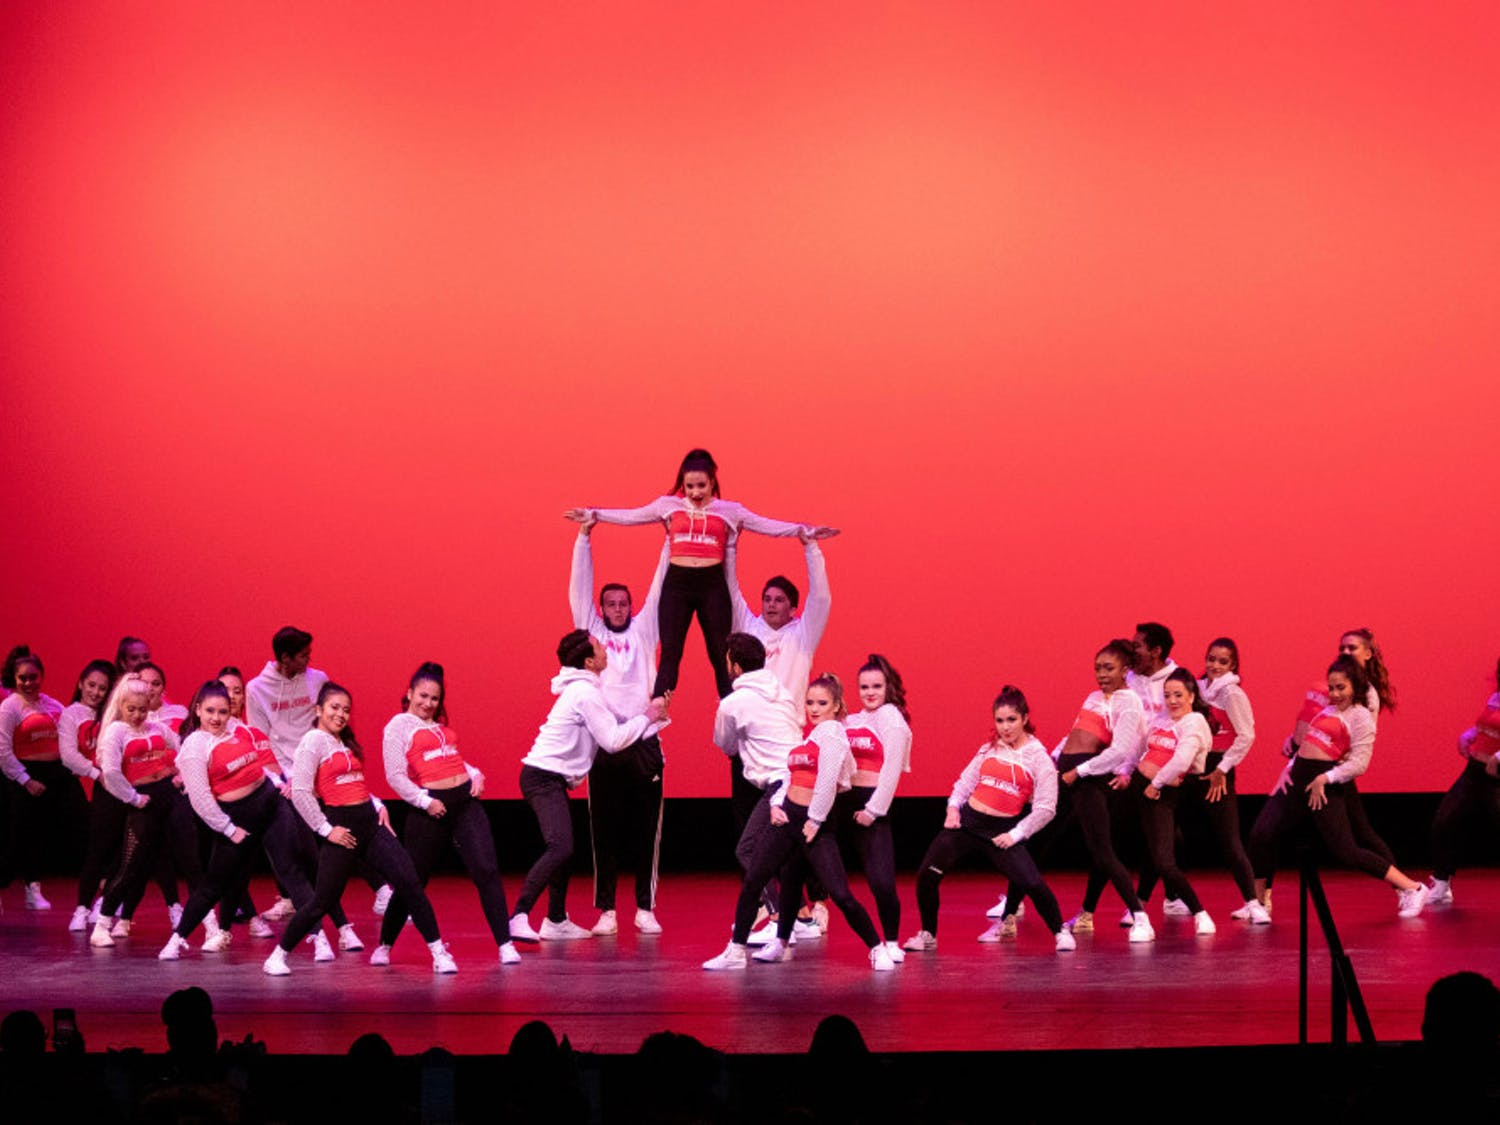 Sabor Latino, a Latino dance club at UF, starts their routine at the 2019 Soulfest, which is hosted as a part of Gator Growl in an effort to showcase and celebrate the diversity and talent among the students at UF.